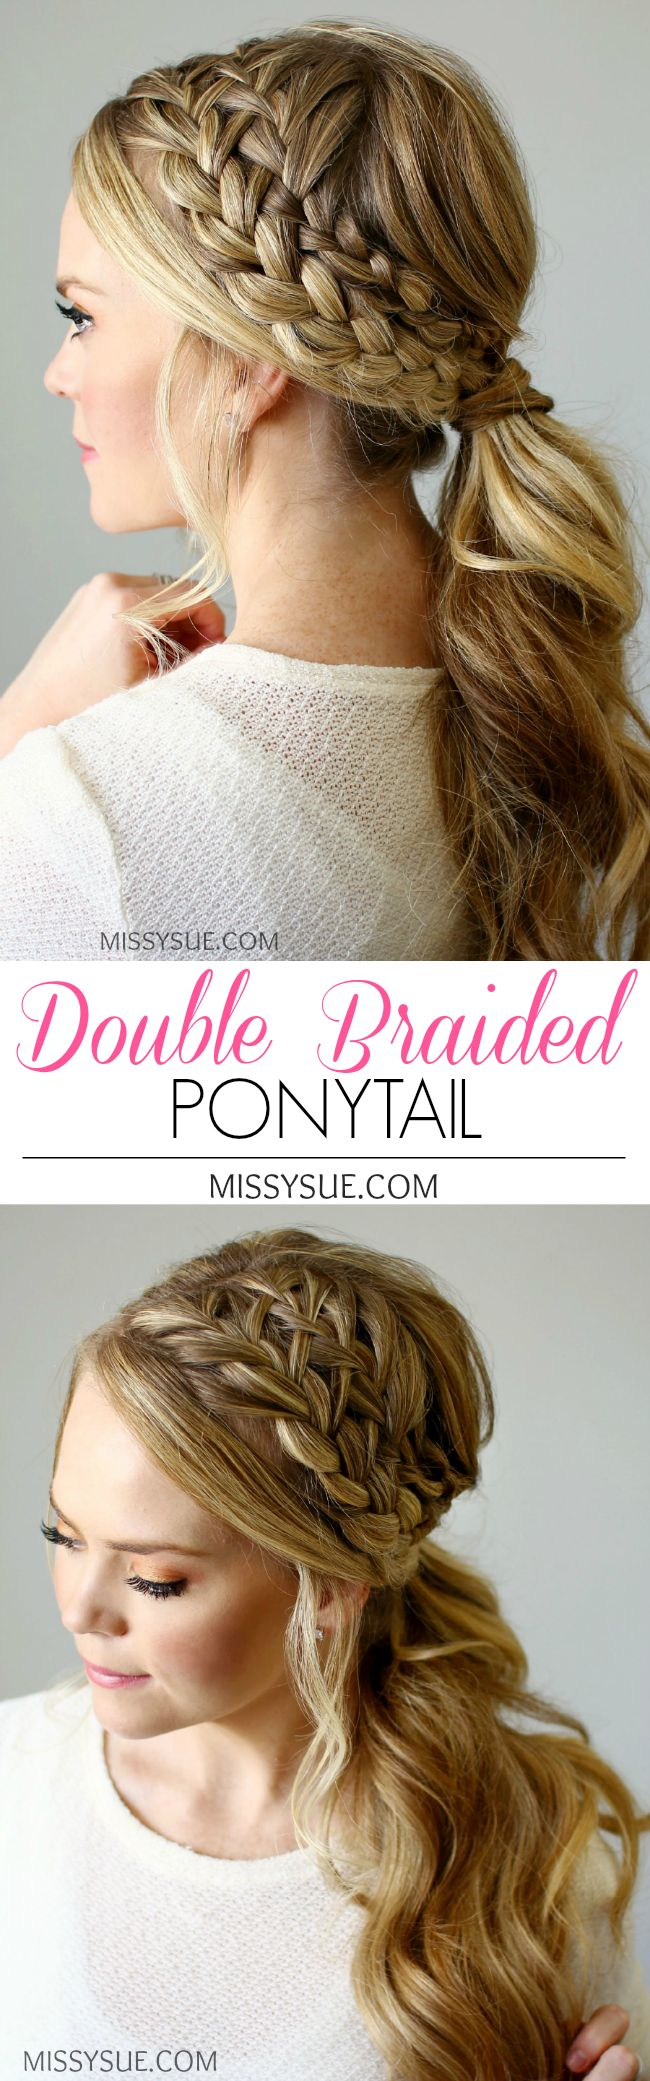 Remarkable 1000 Ideas About Double Braid On Pinterest Braids Fishtail And Hairstyle Inspiration Daily Dogsangcom